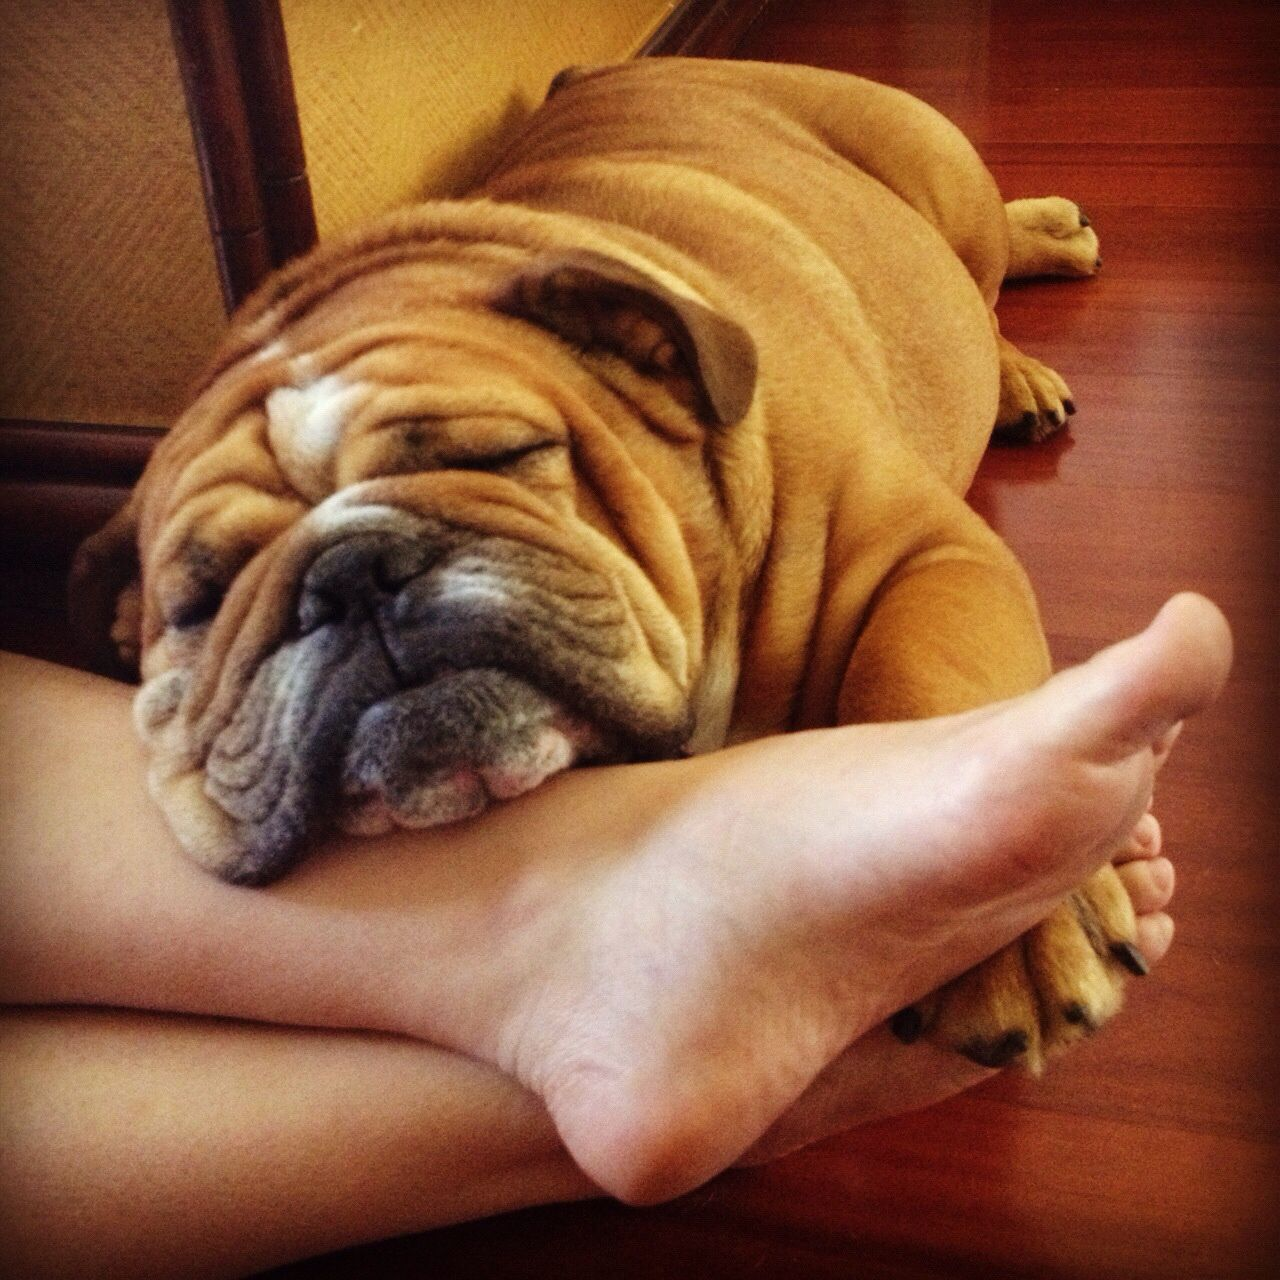 Love Bulldog #english #bulldog #englishbulldog #bulldogs #breed #dogs #pets #animals #dog #canine #pooch #bully #doggy